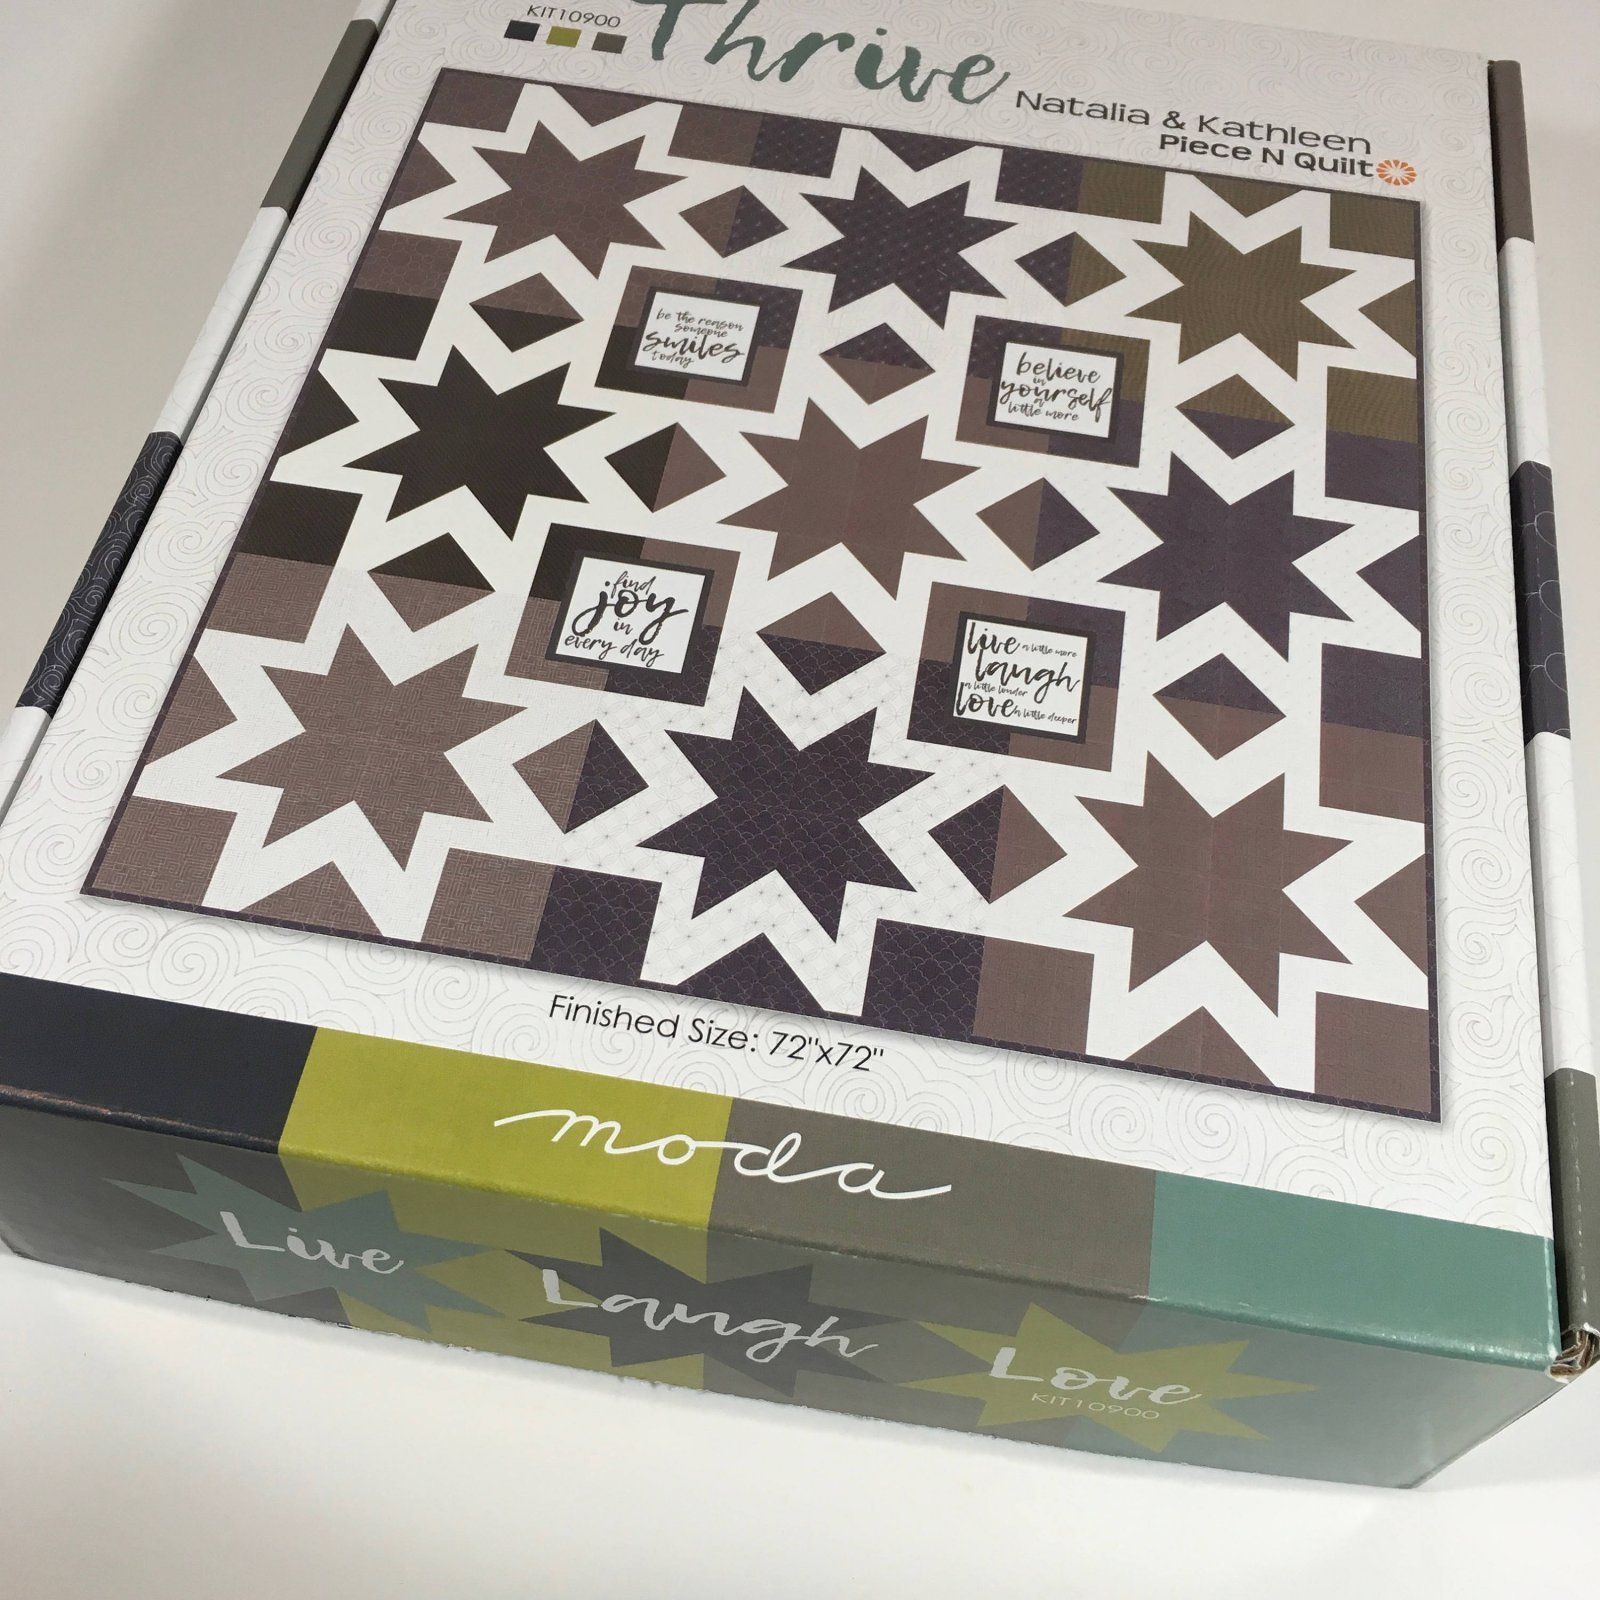 Thrive, Fabric Kit by Natalia & Kathleen for Moda : KIT10900